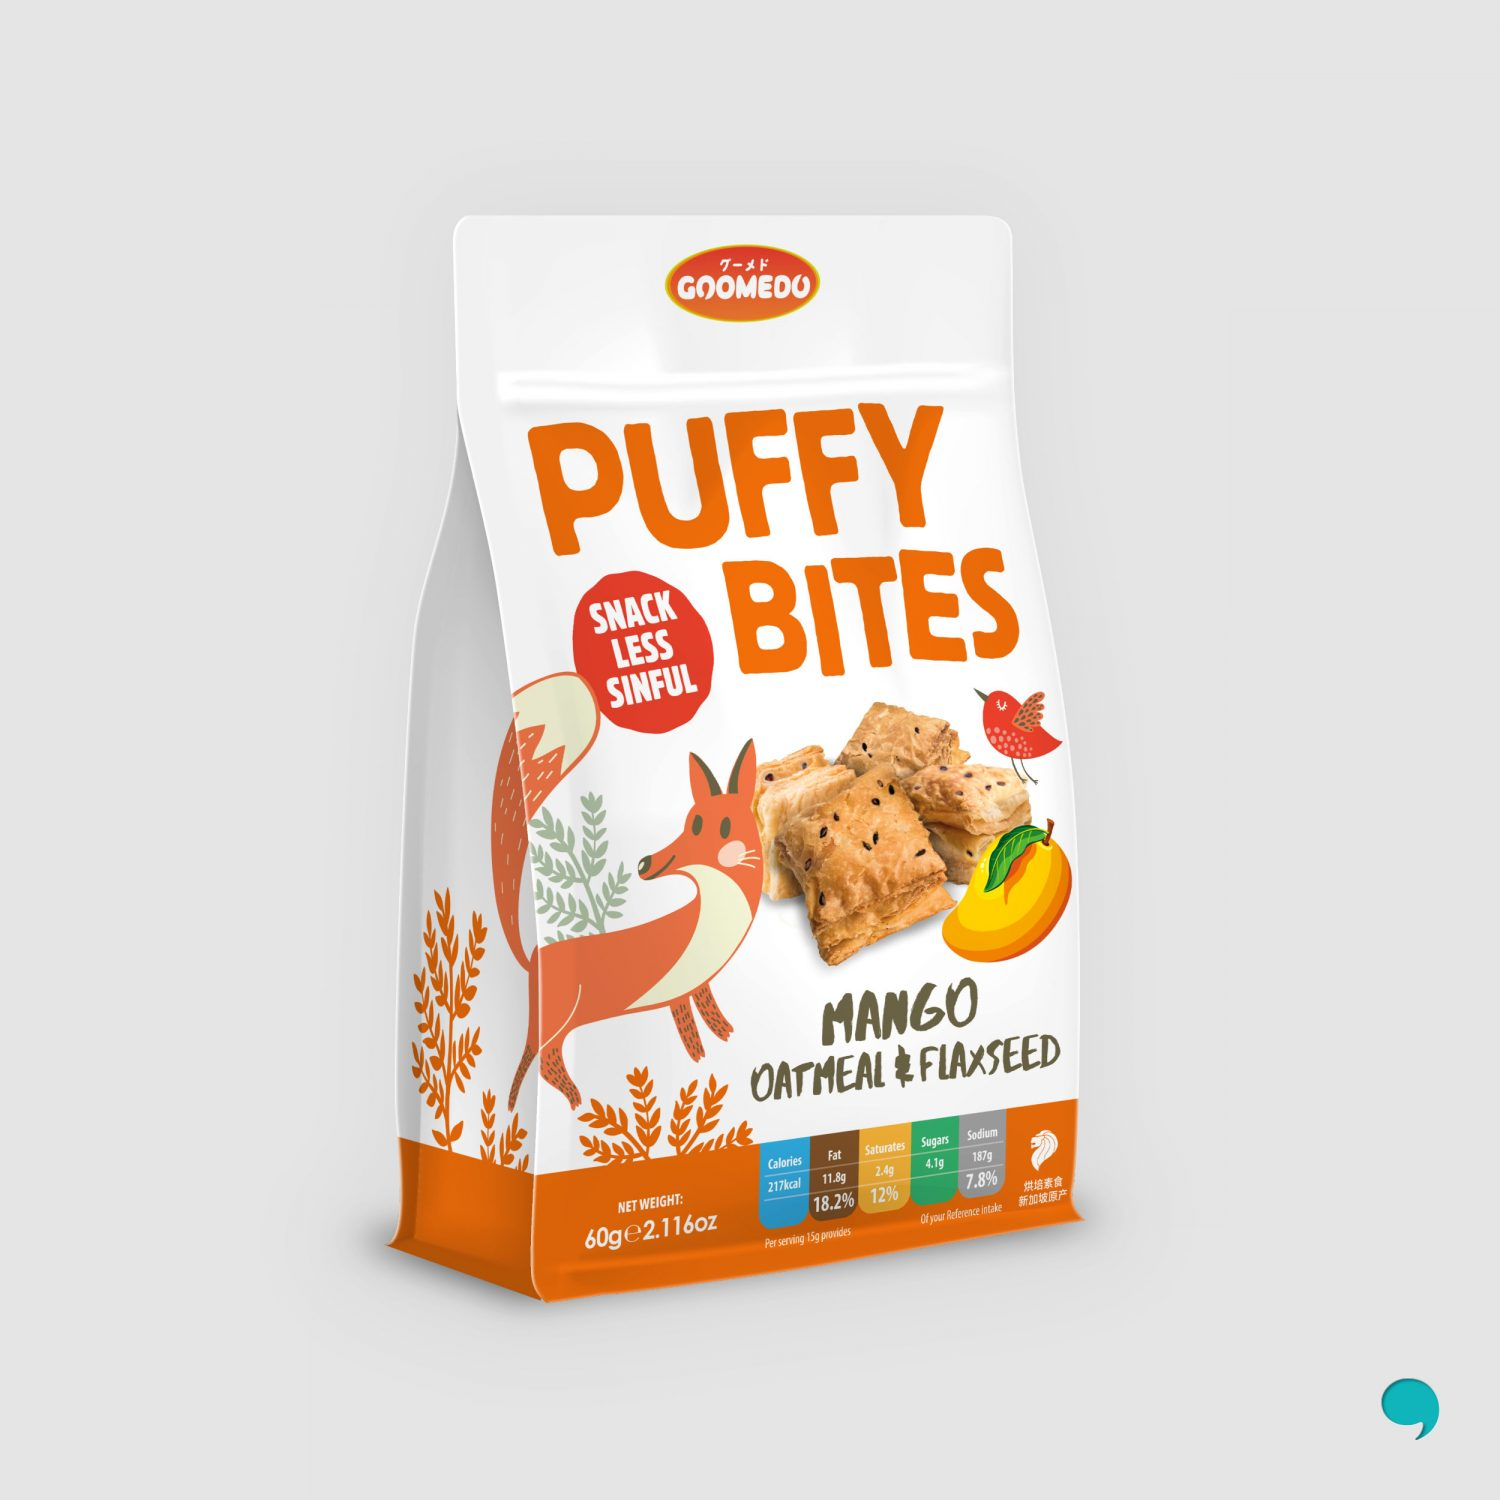 Packaging_PuffyBites_Mango